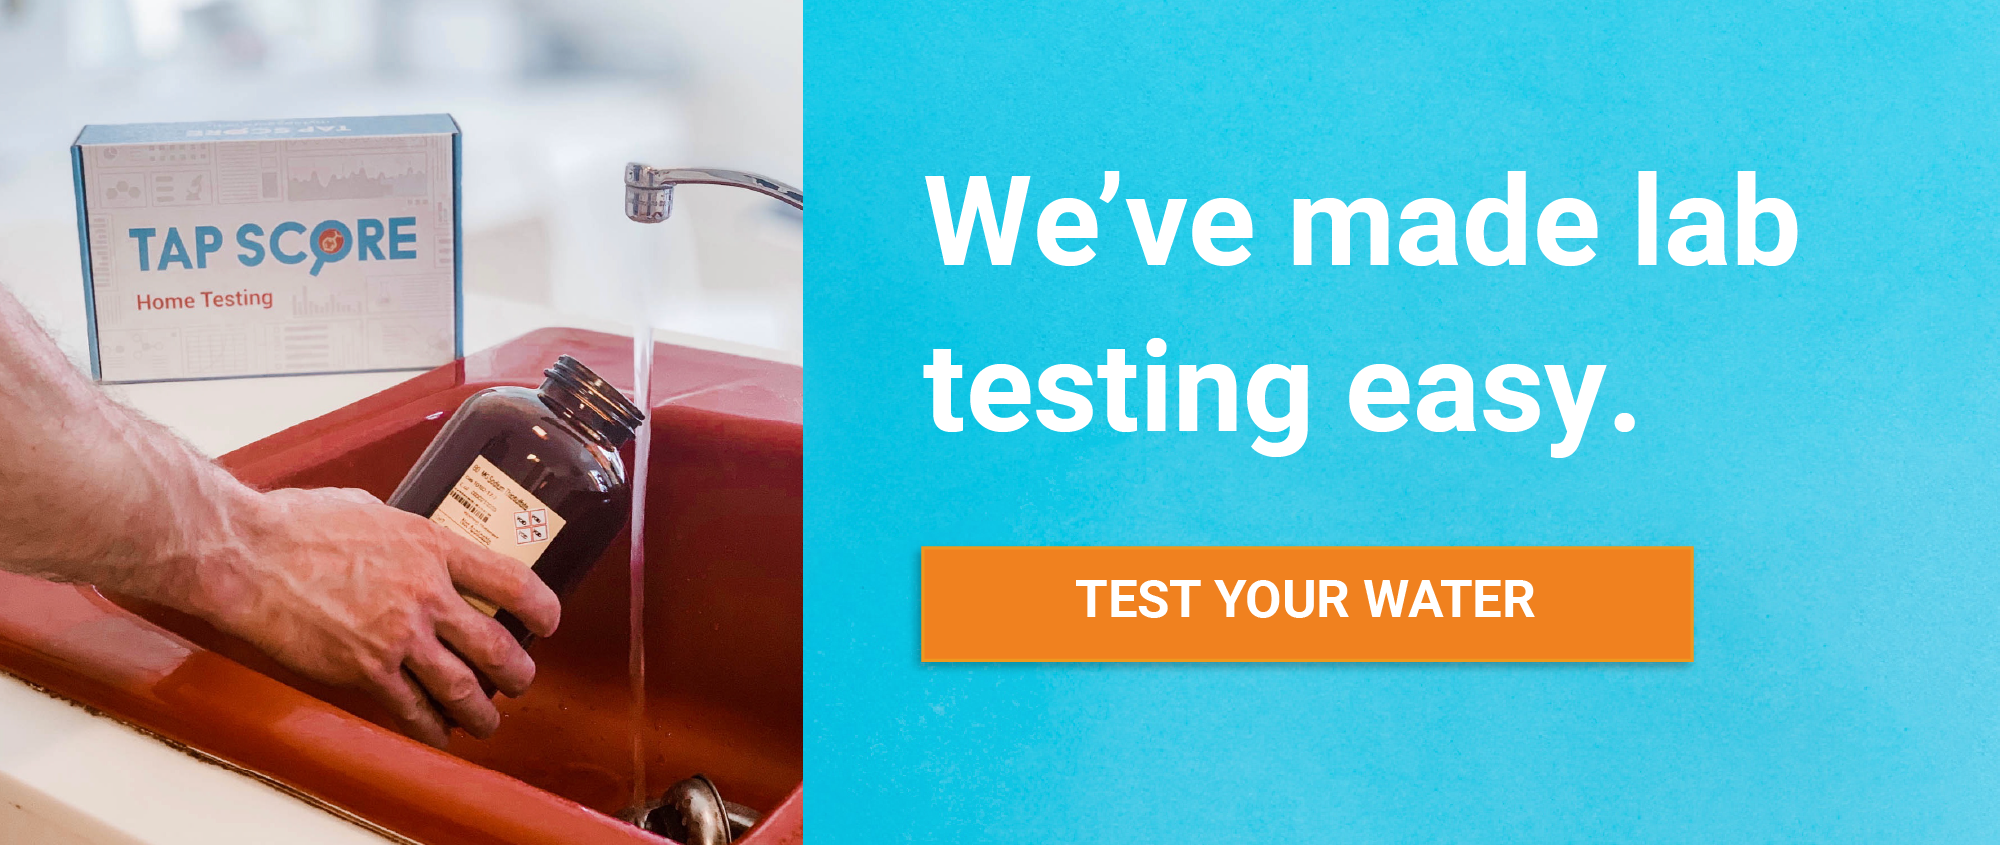 Lab Testing made Easy